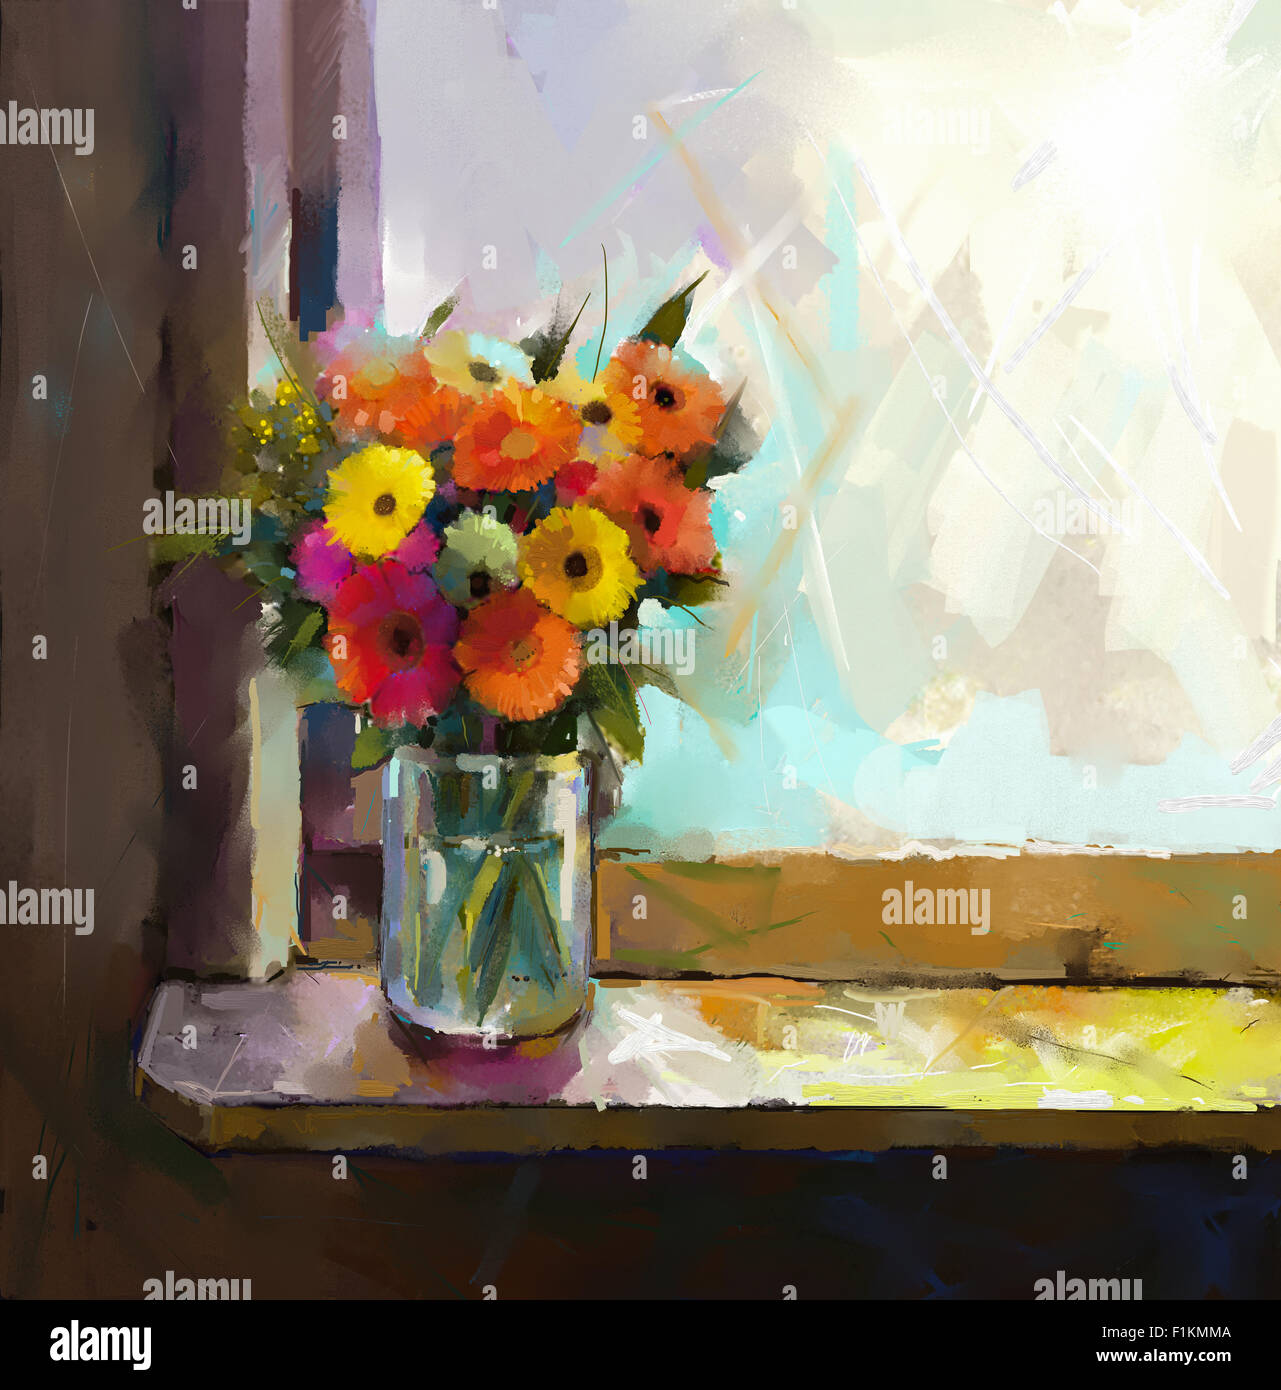 Oil Painting Bouquet Of Daisy And Gerbera Flowers,Glass